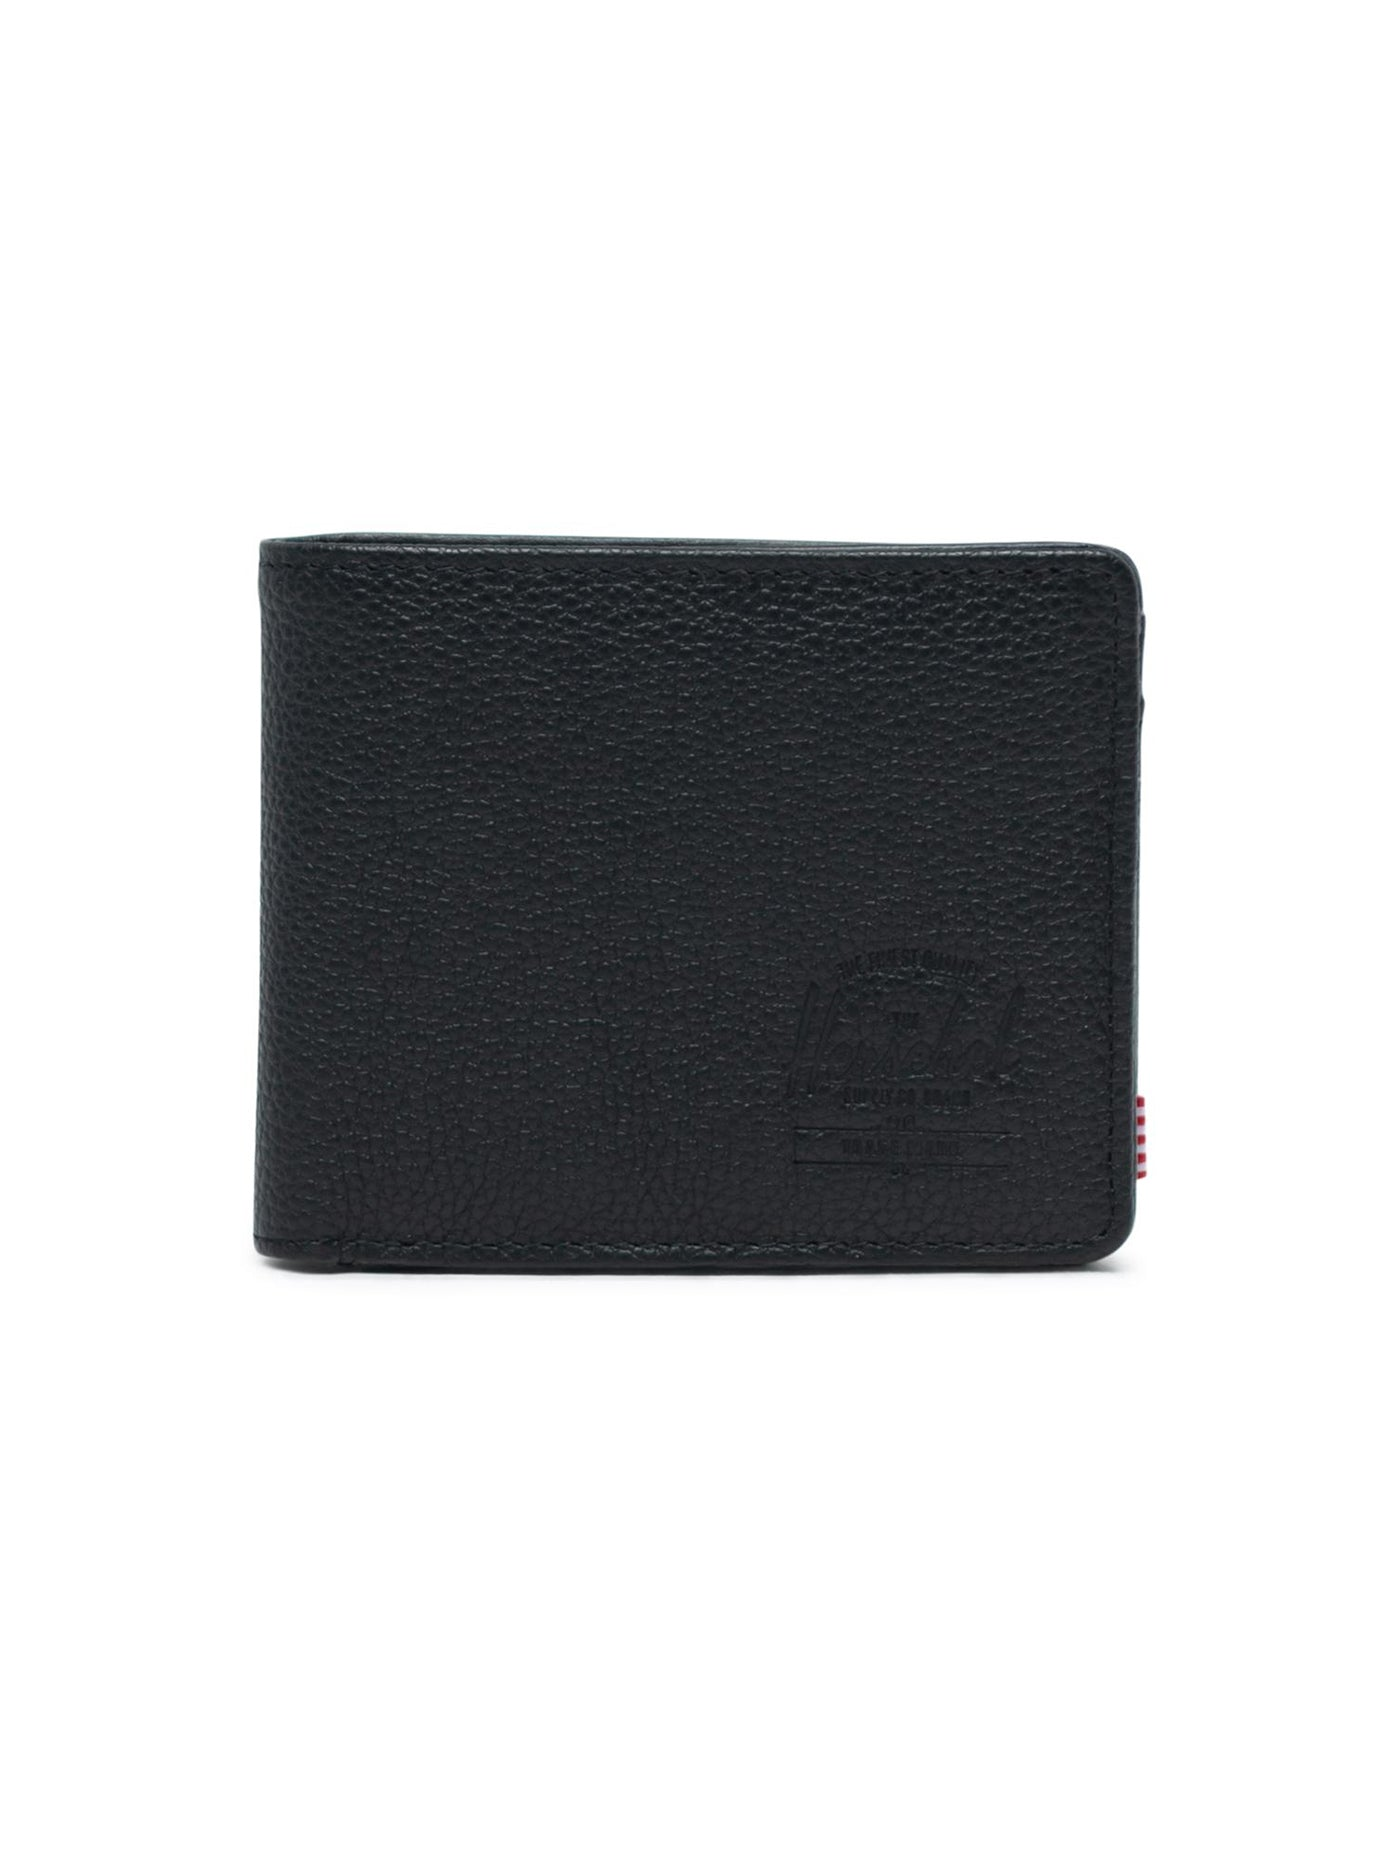 BLACK PEB LEATHER (01885)